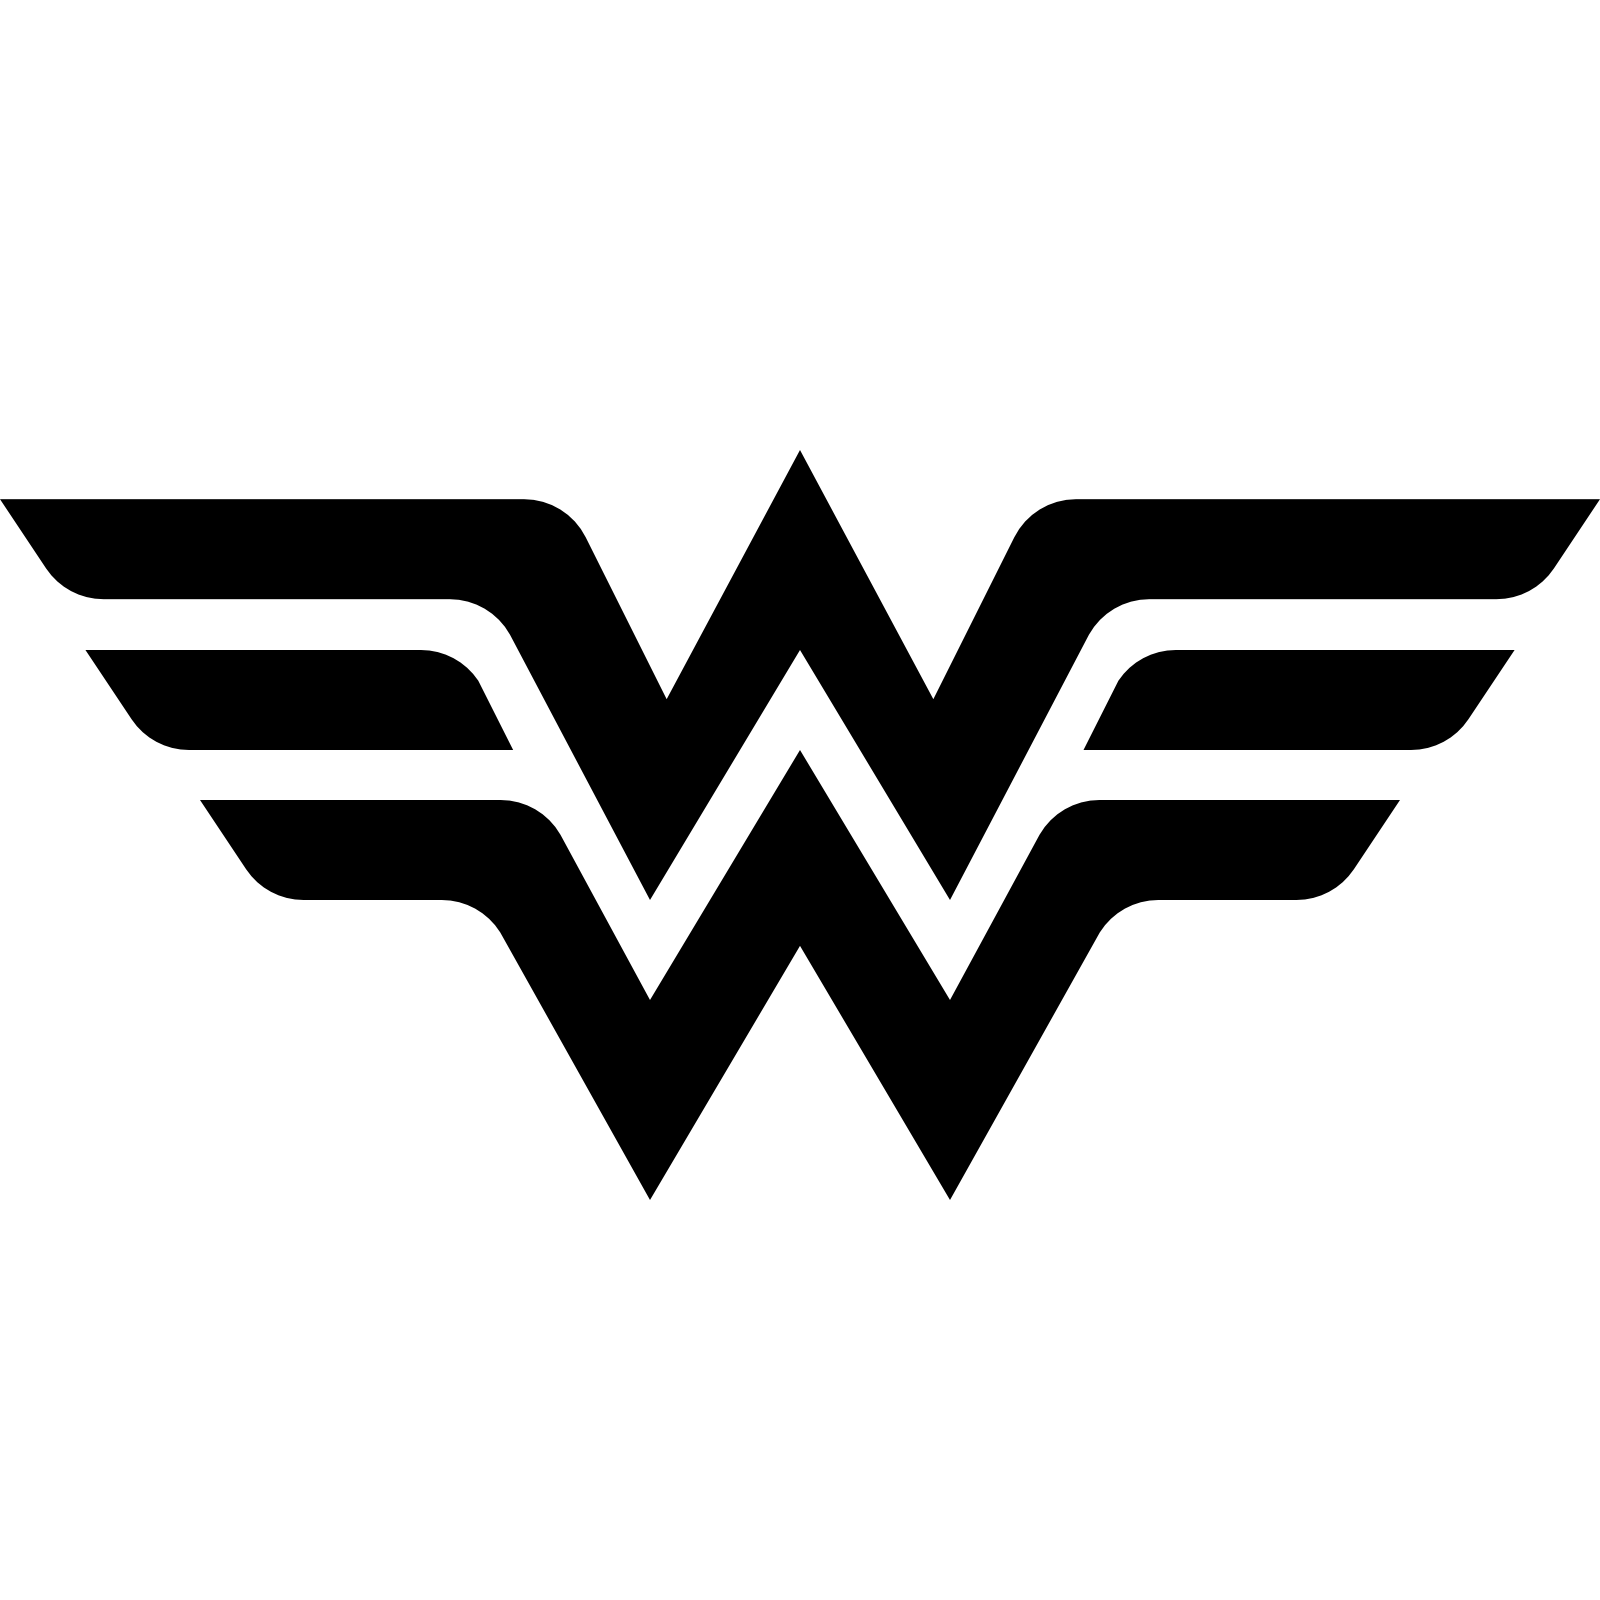 wonder woman silhouette vector at getdrawings com free for rh getdrawings com wonder woman free vector wonder woman vector free download